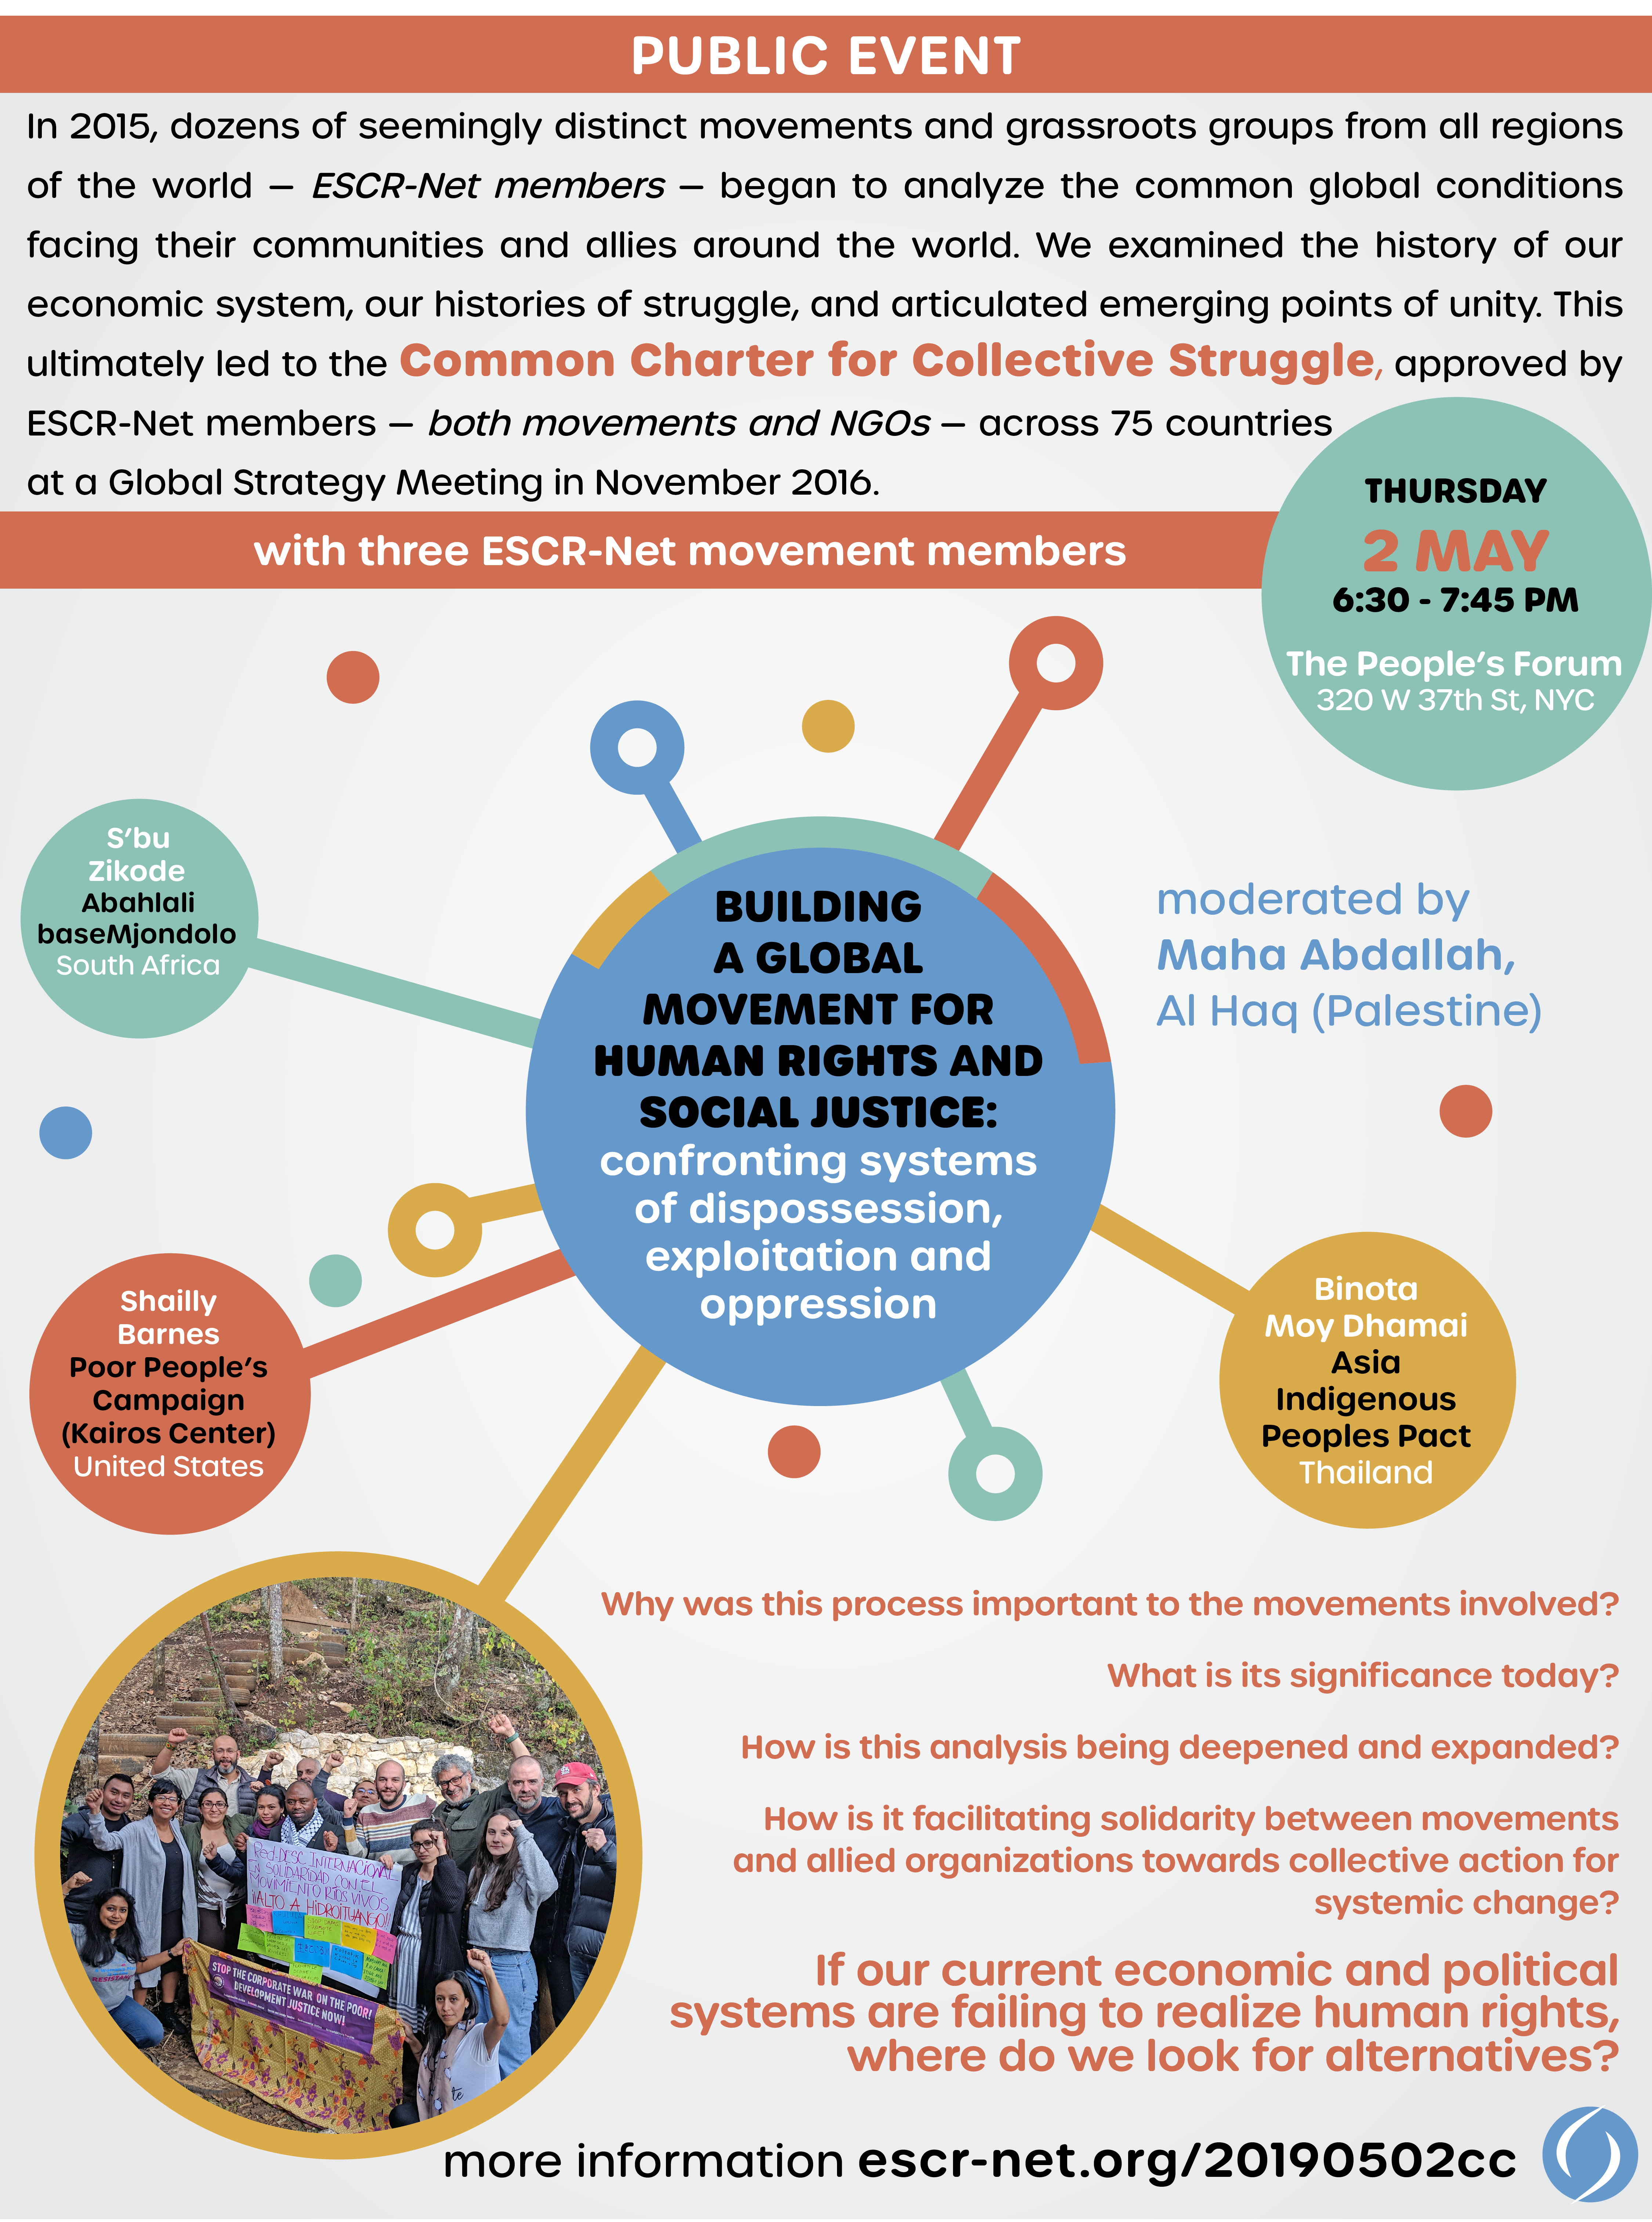 In 2015, dozens of seemingly distinct movements and grassroots groups from all regions of the world — ESCR-Net members — began to analyze the common global conditions facing their communities and allies around the world. We examined the history of our economic system, our histories of struggle, and articulated emerging points of unity. This ultimately led to the Common Charter for Collective Struggle, approved by ESCR-Net members — both movements and NGOs — across 75 countries at a Global Strategy Meeting in November 2016.